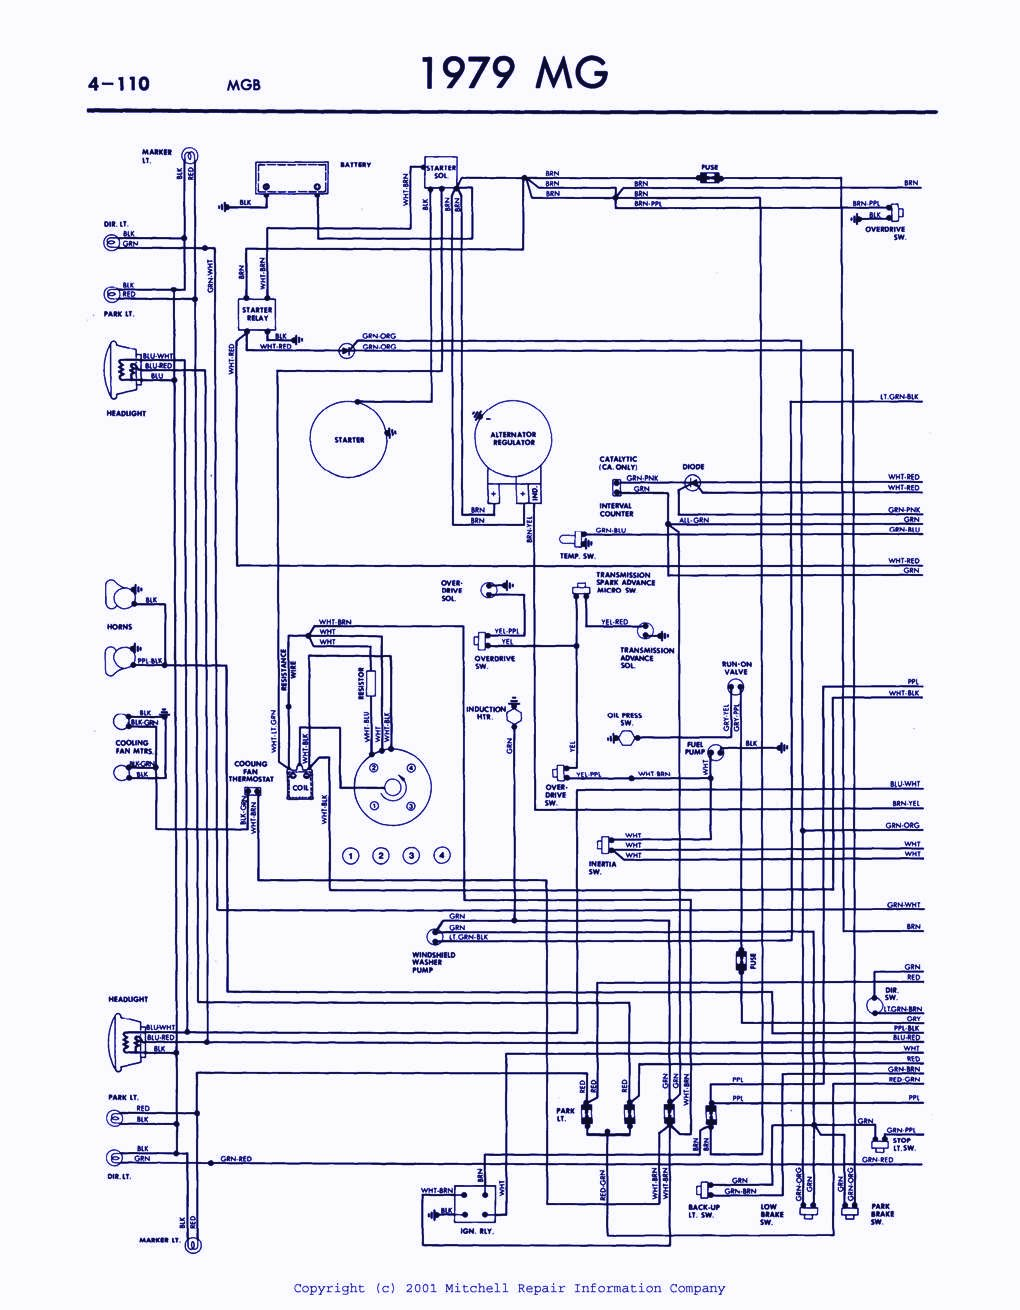 wiring diagram for 1976 mgb the wiring diagram mgb wiring diagram pdf mgb printable wiring diagrams database wiring diagram